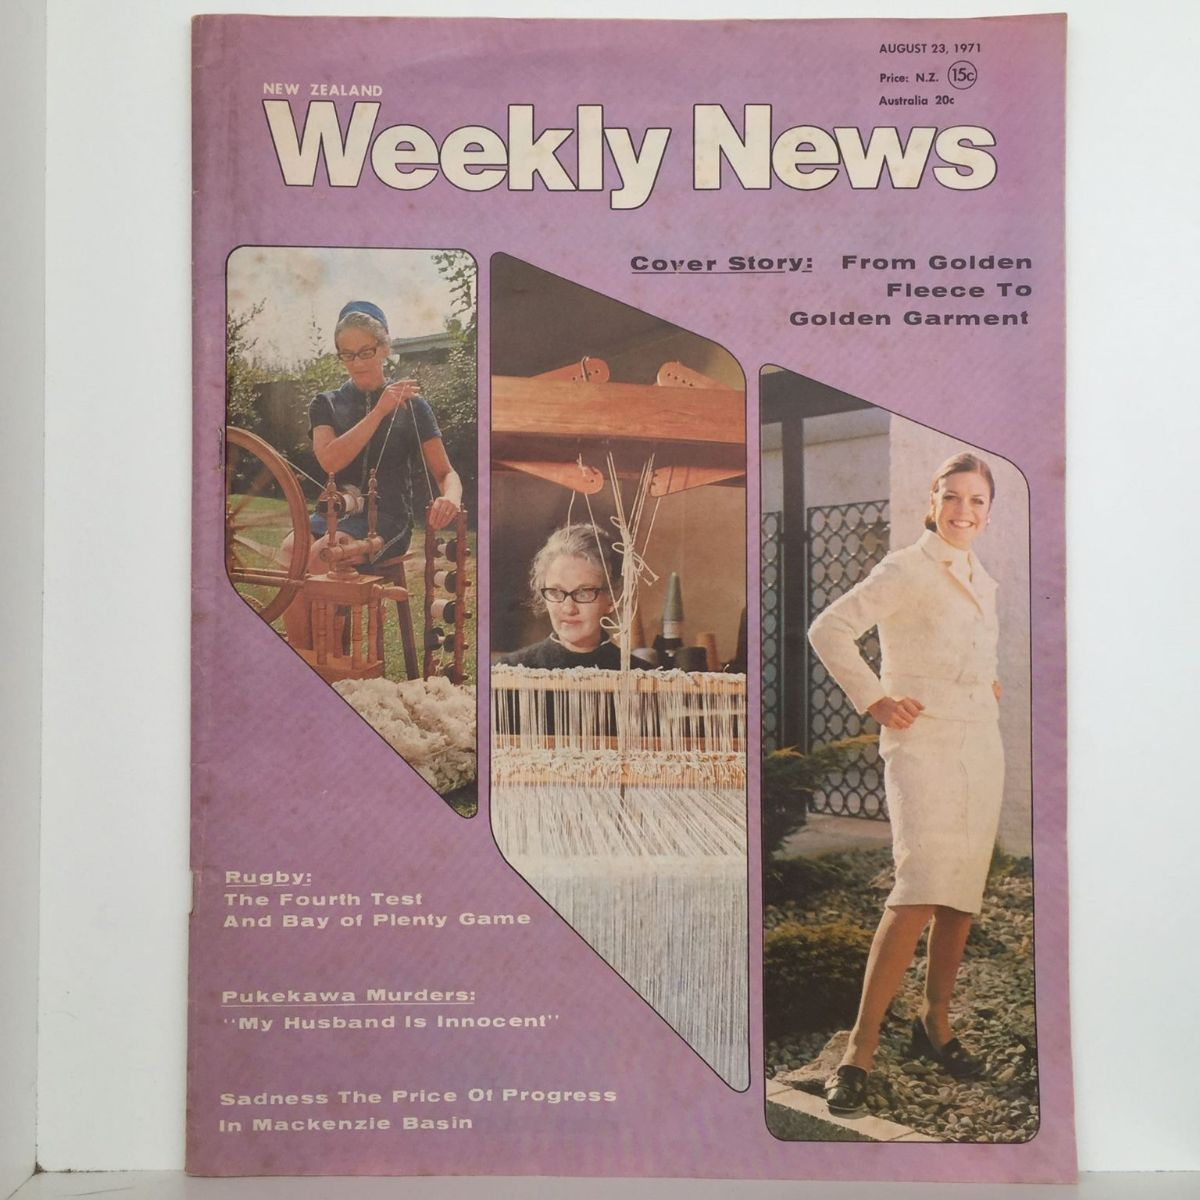 New Zealand Weekly News - 23 August 1971